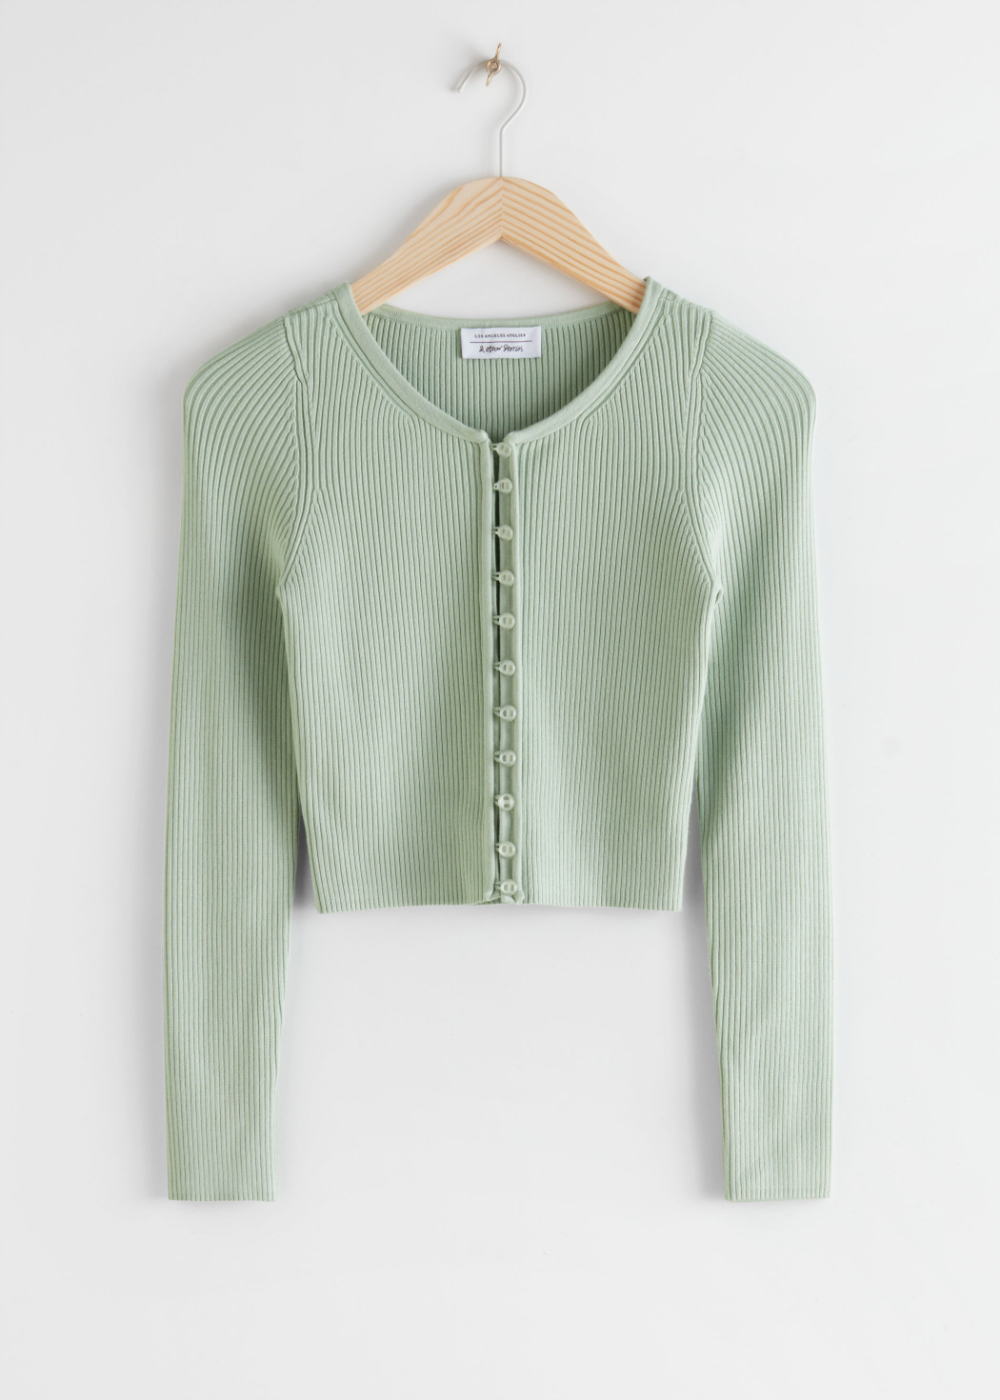 Ribbed Cropped Cardigan Top in 2020 | Clothes, Cardigan tops